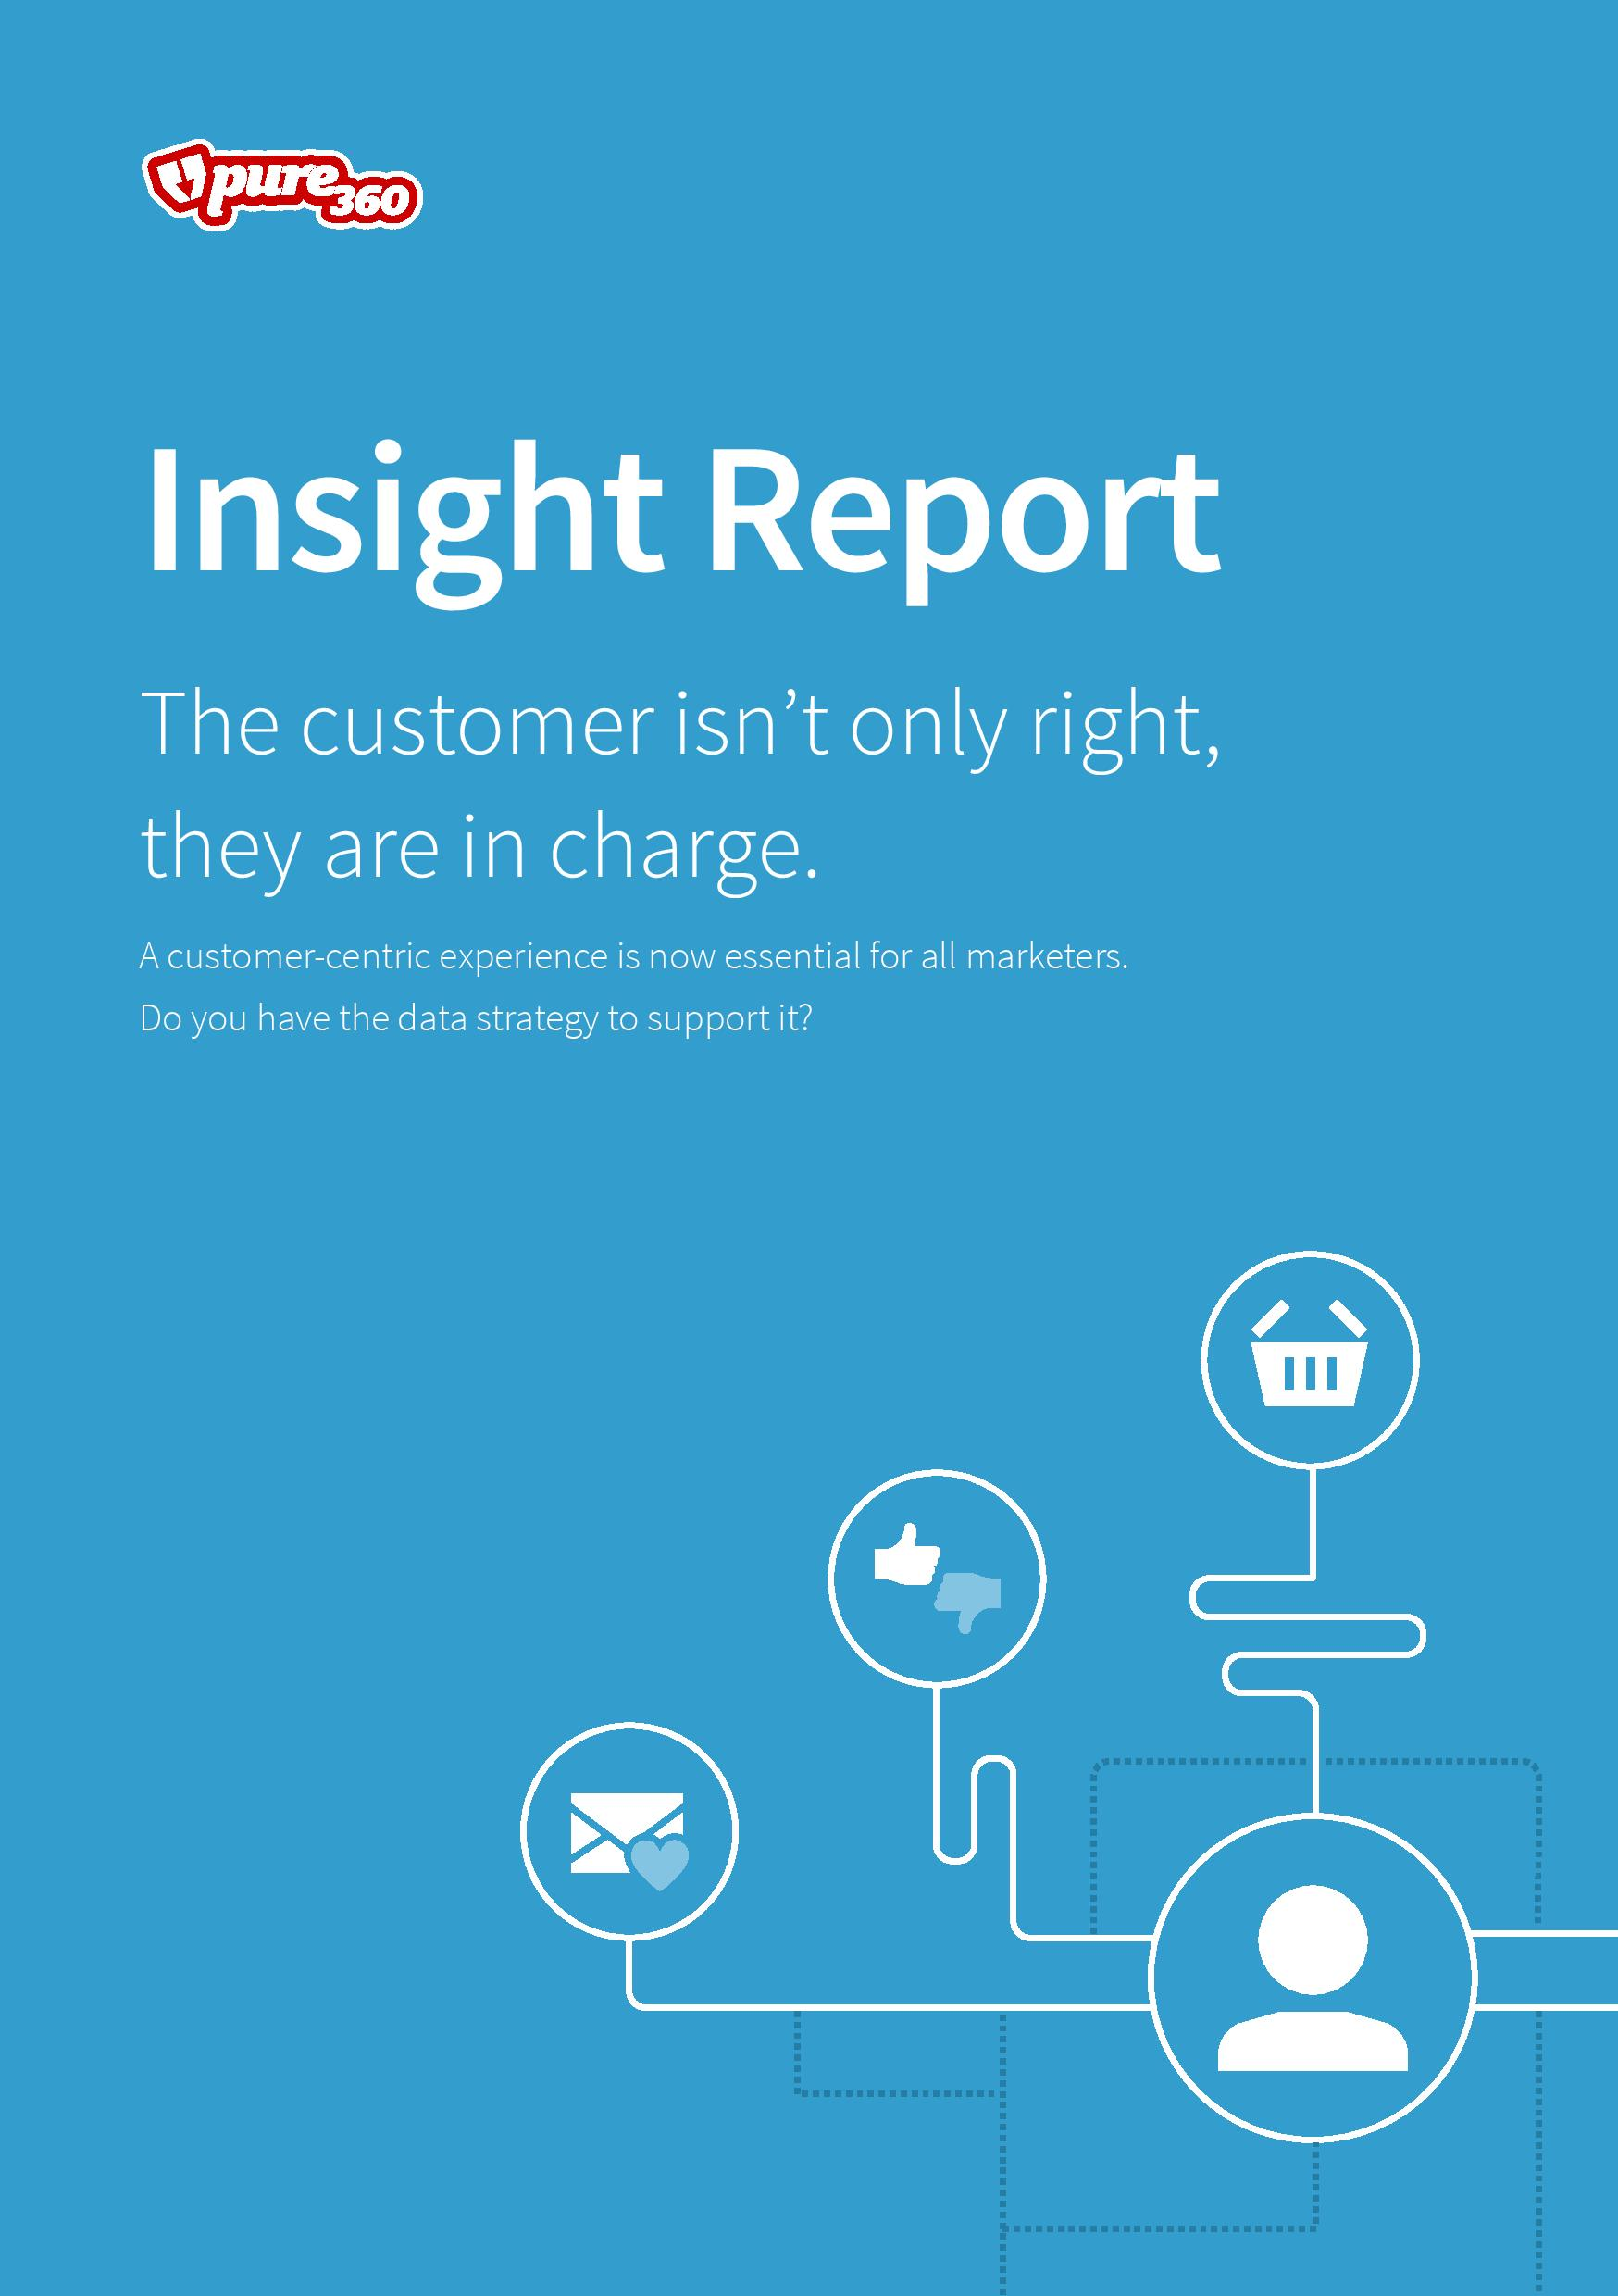 Pure360 Insight Report - Customer Experience